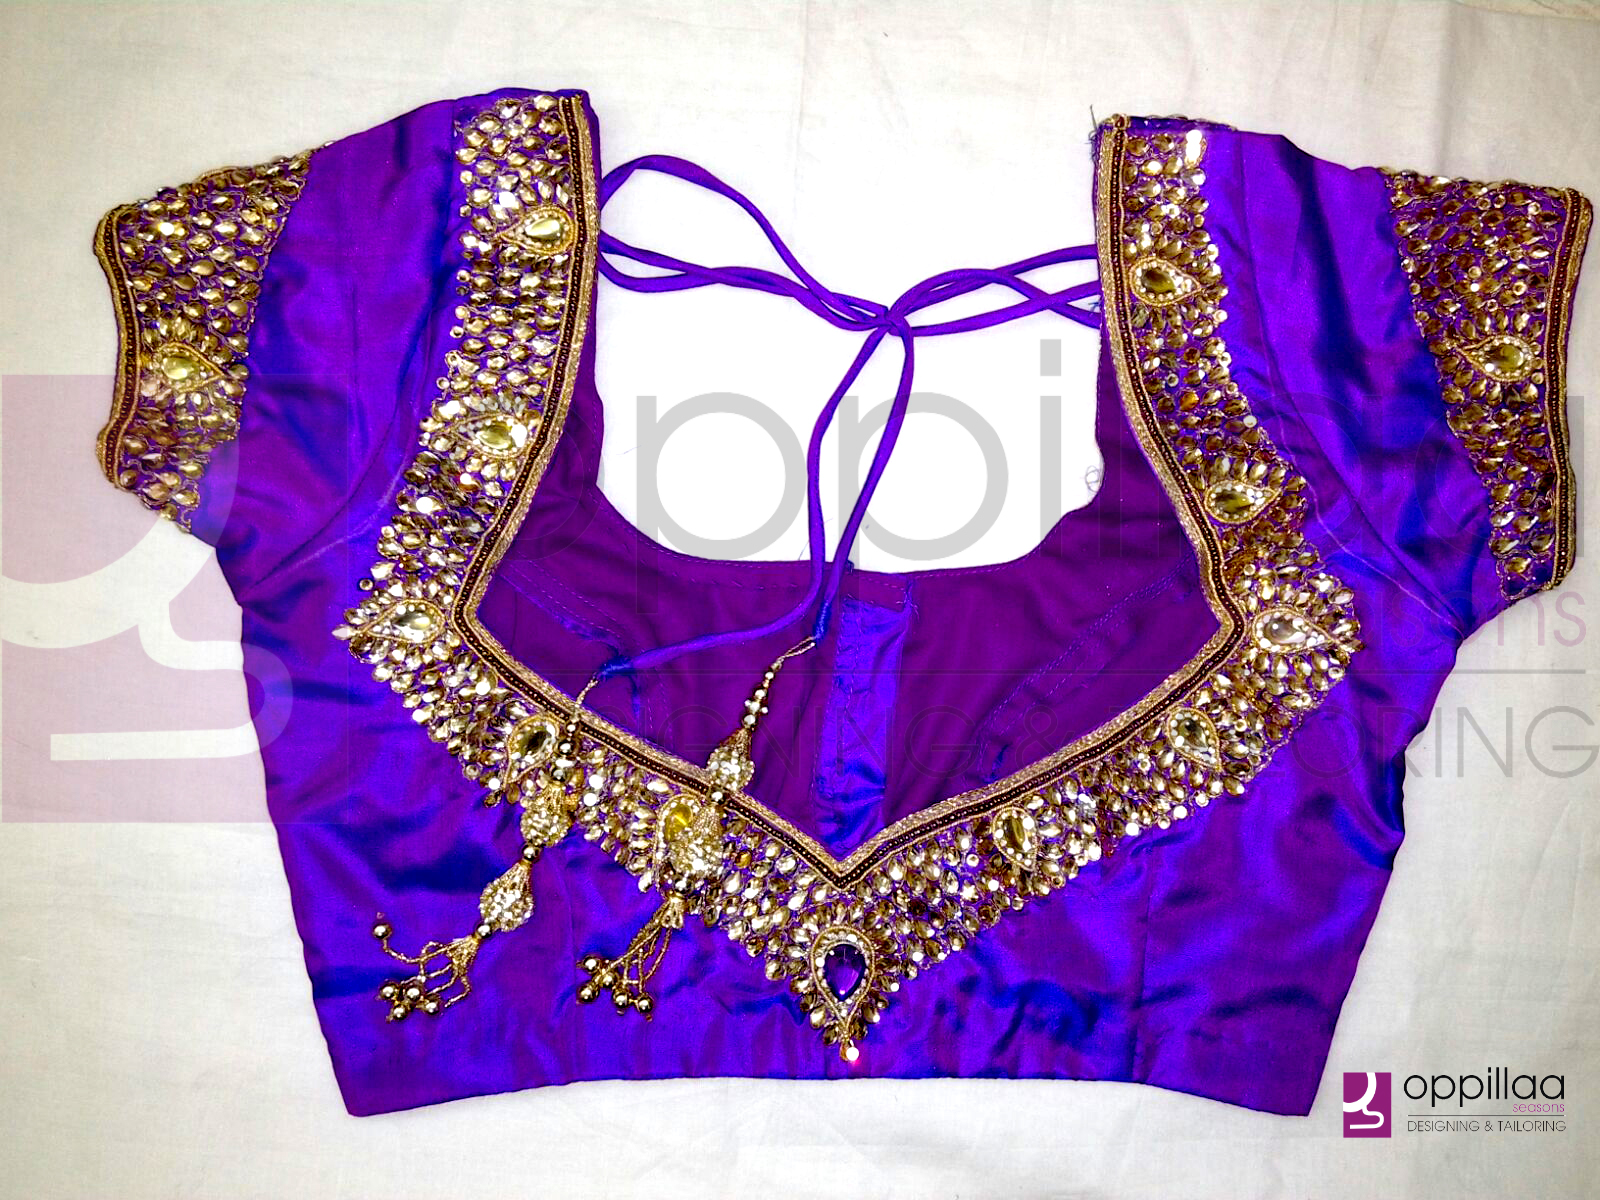 Designer Blouse For Wedding With Price